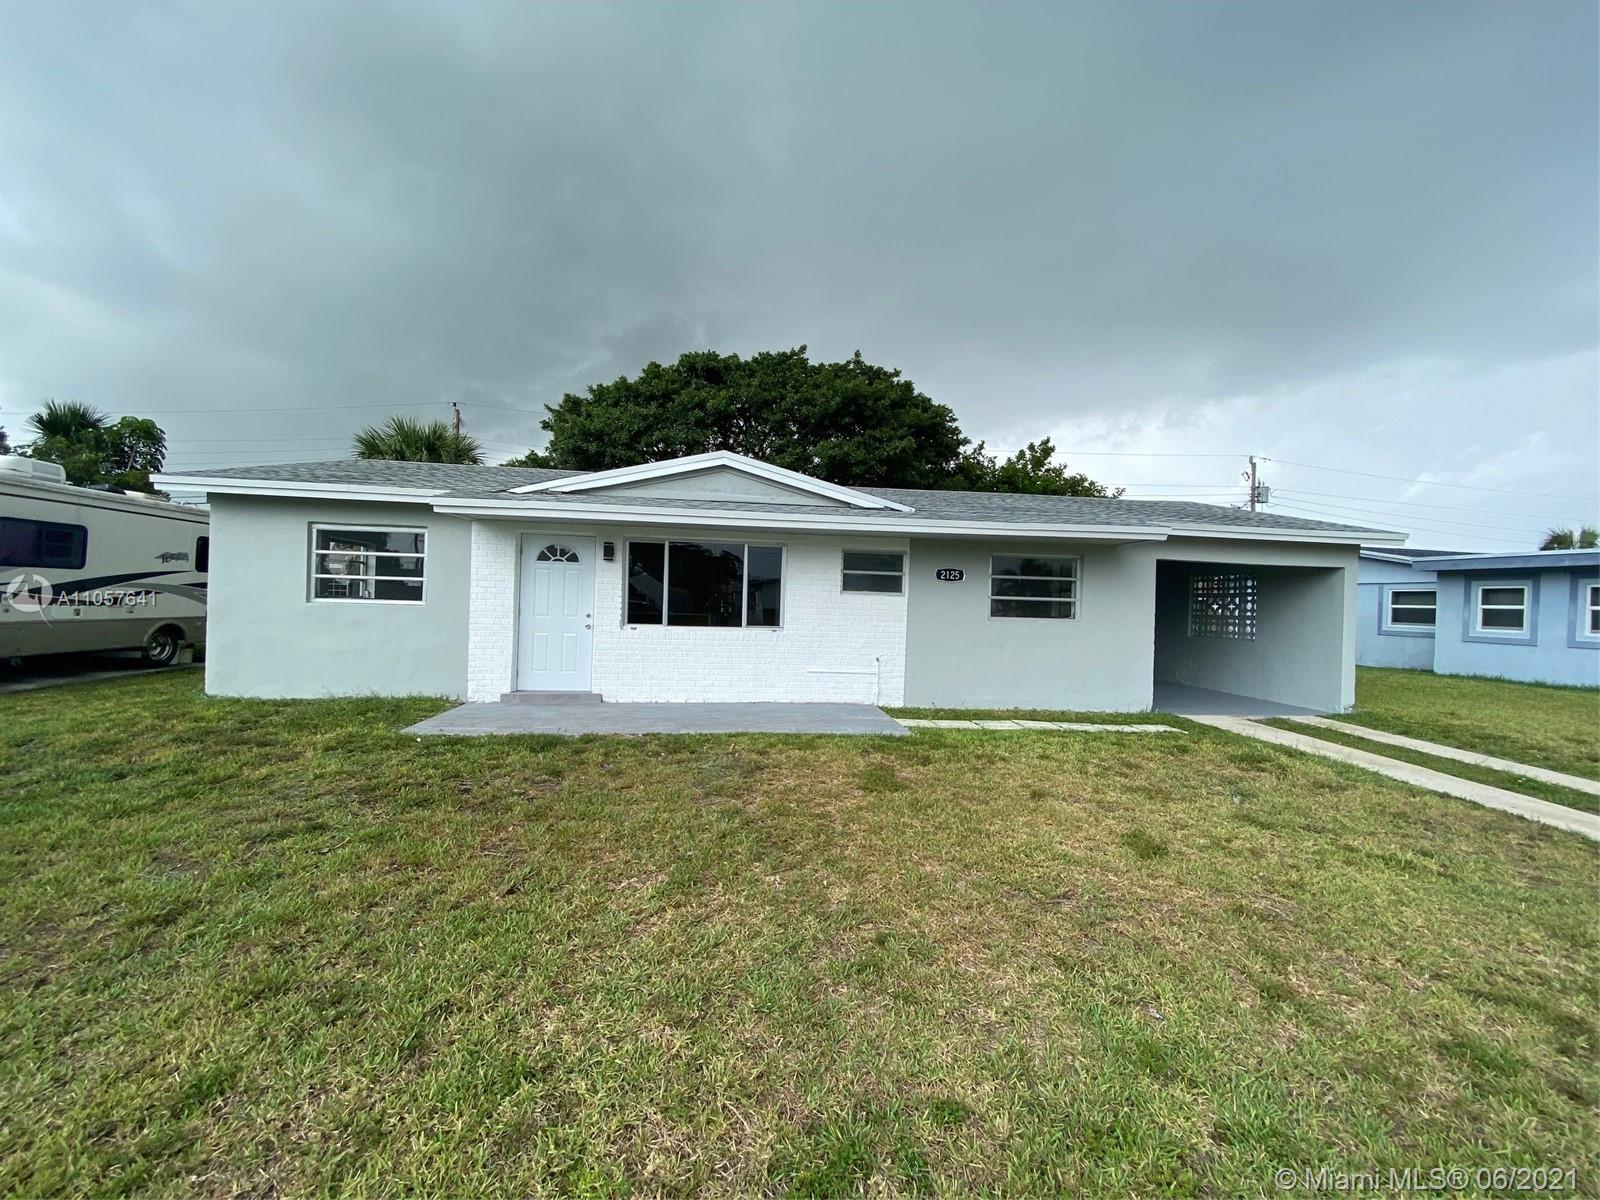 OPEN HOUSE, Saturday 6/19 11 AM - 2 PM. Completely Remodeled 4 Bedroom, 2 Bathroom. EVERYTHING is BR